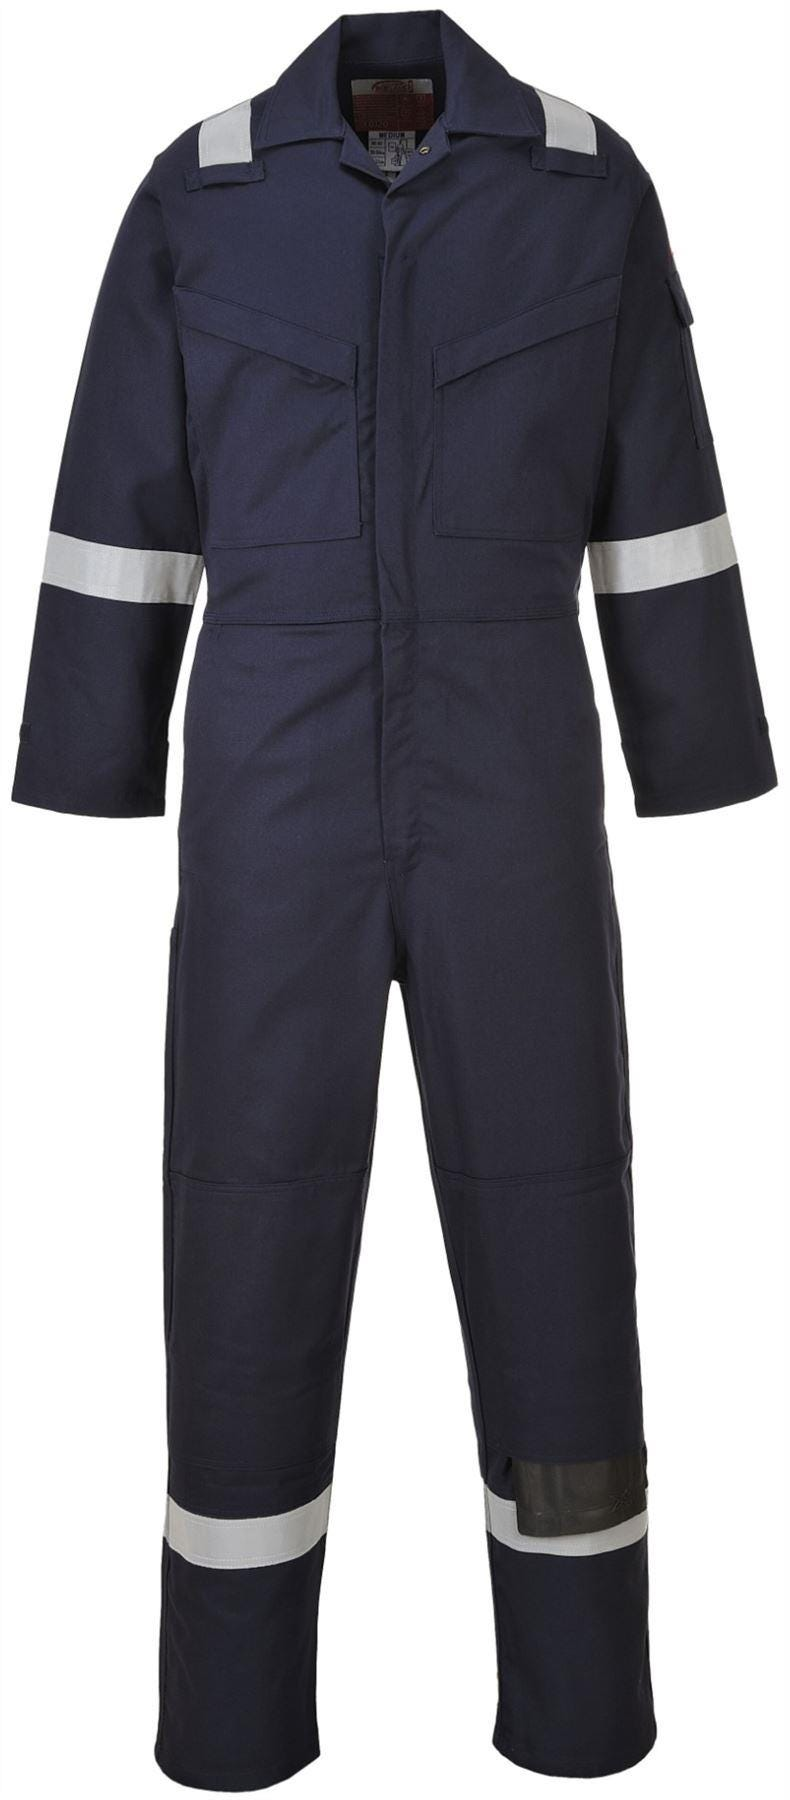 Portwest Flame Resistant Anti-Static Overall - Navy 4XL